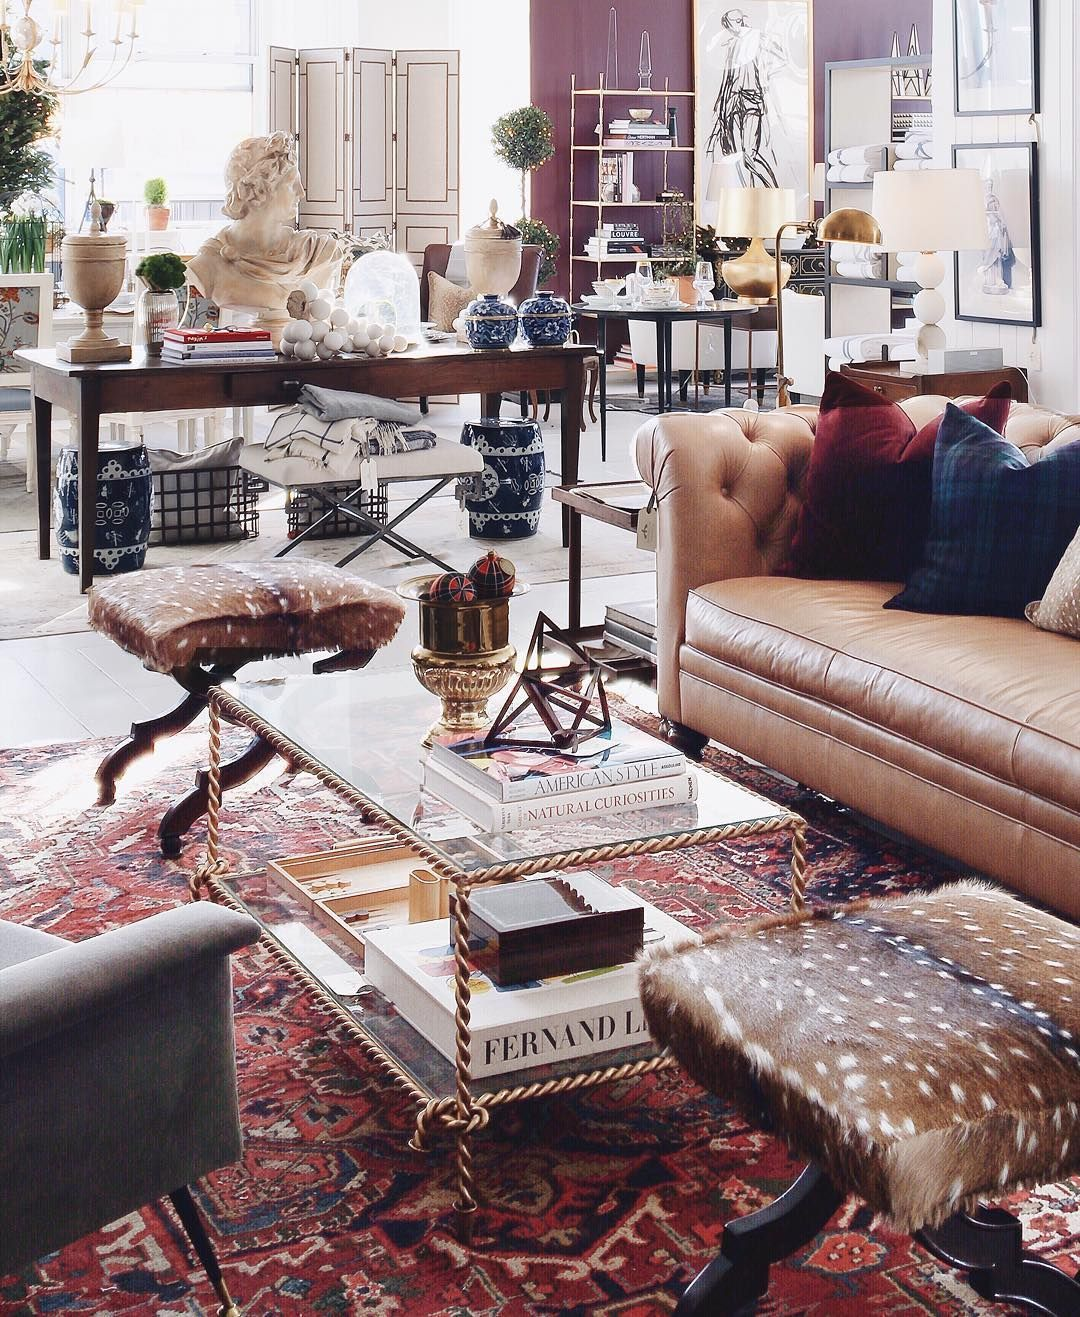 The Coziest Rooms On Instagram #refinery29  http://www.refinery29.com/cozy-winter-room-decor-instagram-pictures#slide-7  A mix of texture and patterns makes ornate furniture feel more lived-in....